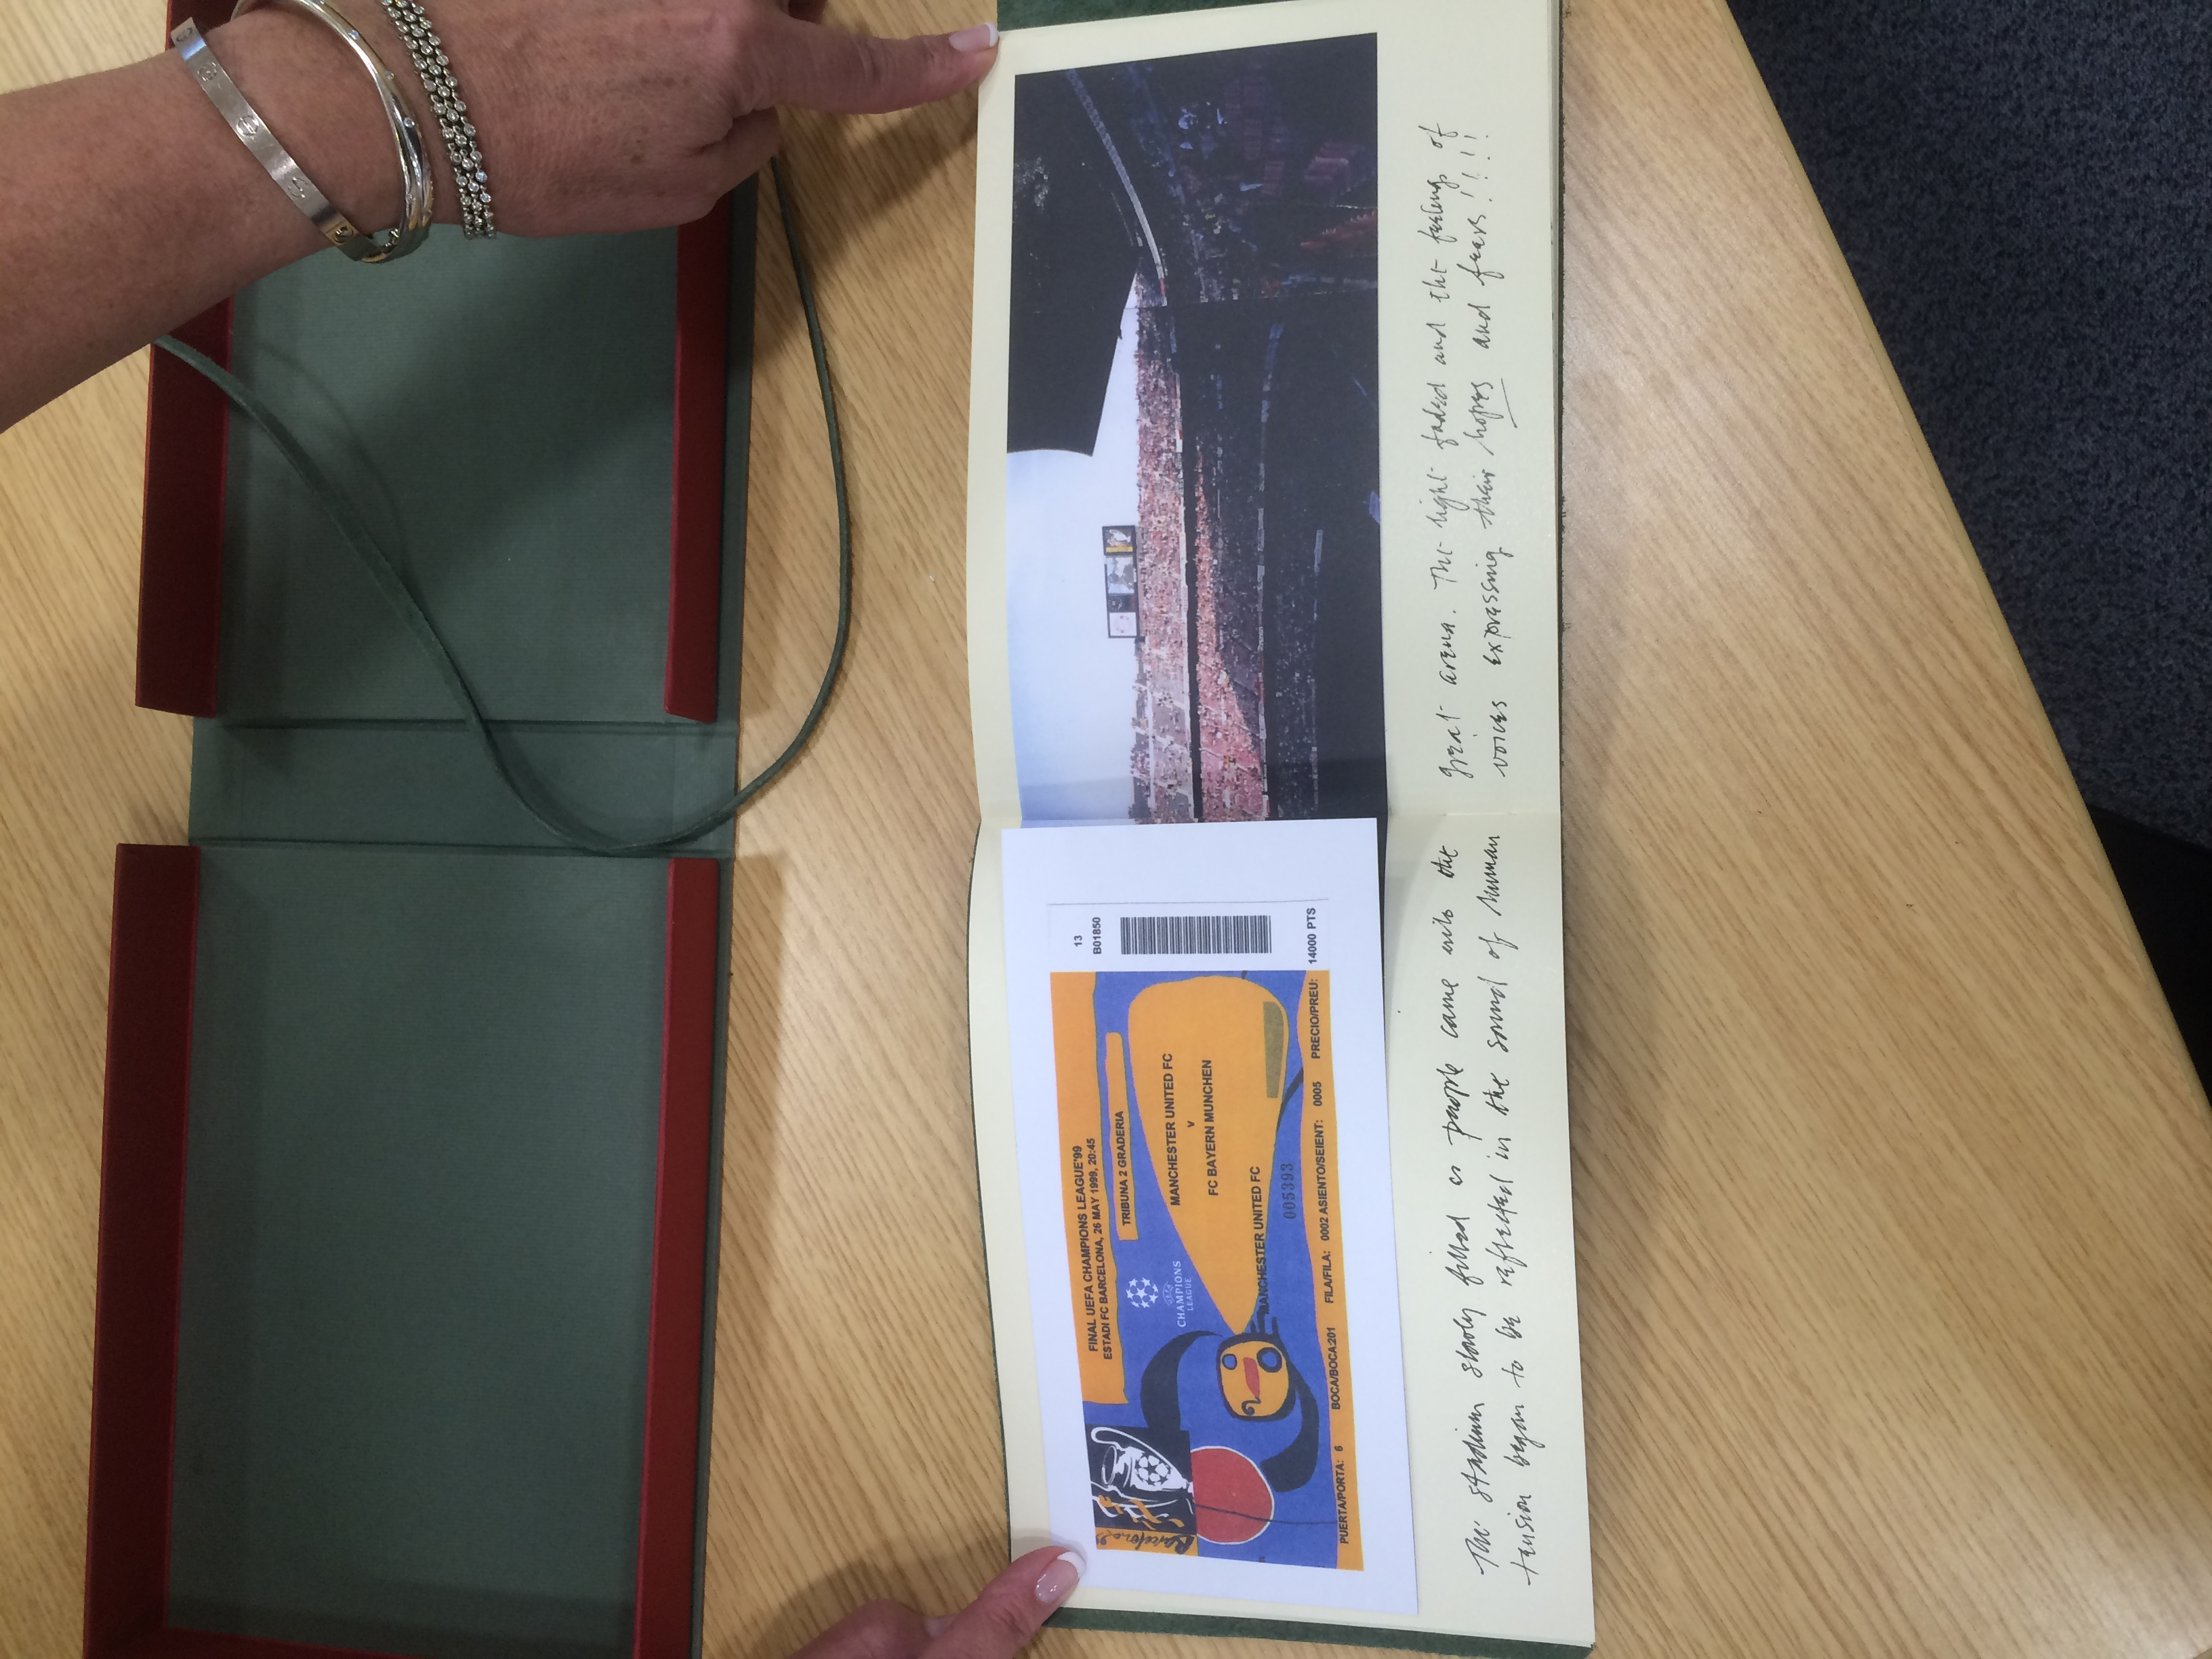 Lot 1a - SIR ALEX FERGUSON PERSONALLY DONATES MAGNIFICENT SKETCH BOOK BY HAROLD RILEY BOTH HAVE SIGNED IT TOO